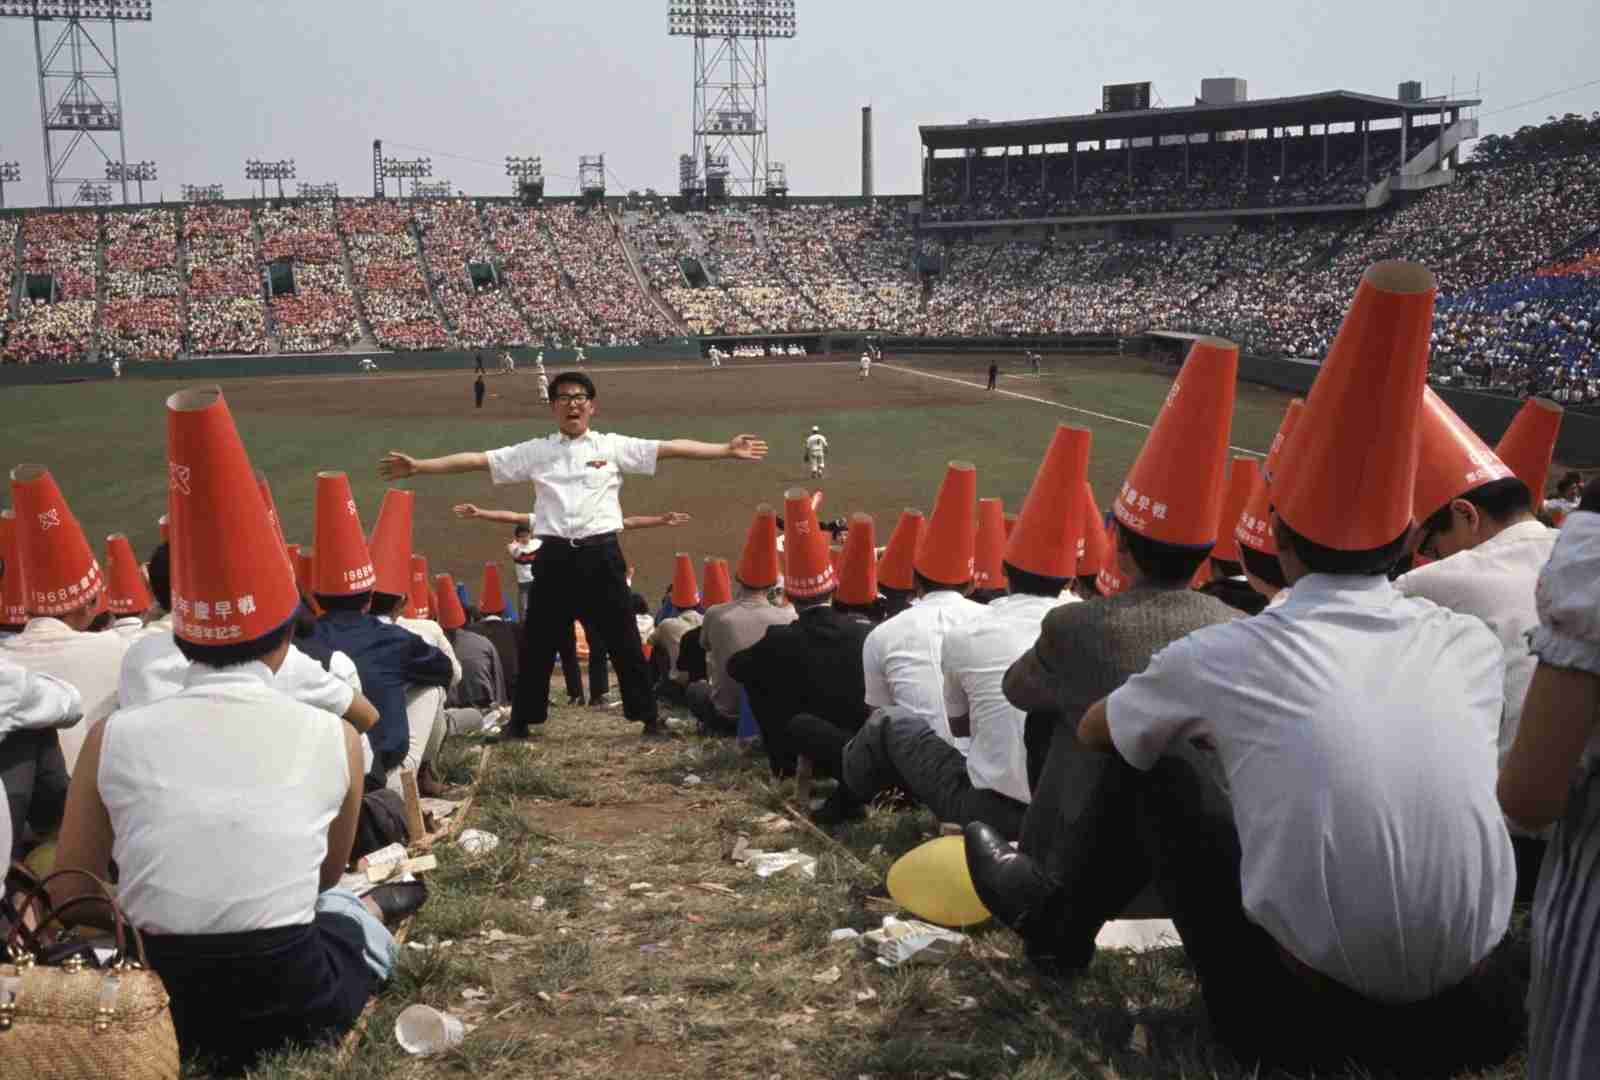 A baseball game in Tokyo, Japan. (Photo by Hans SILVESTER/Gamma-Rapho via Getty Images)